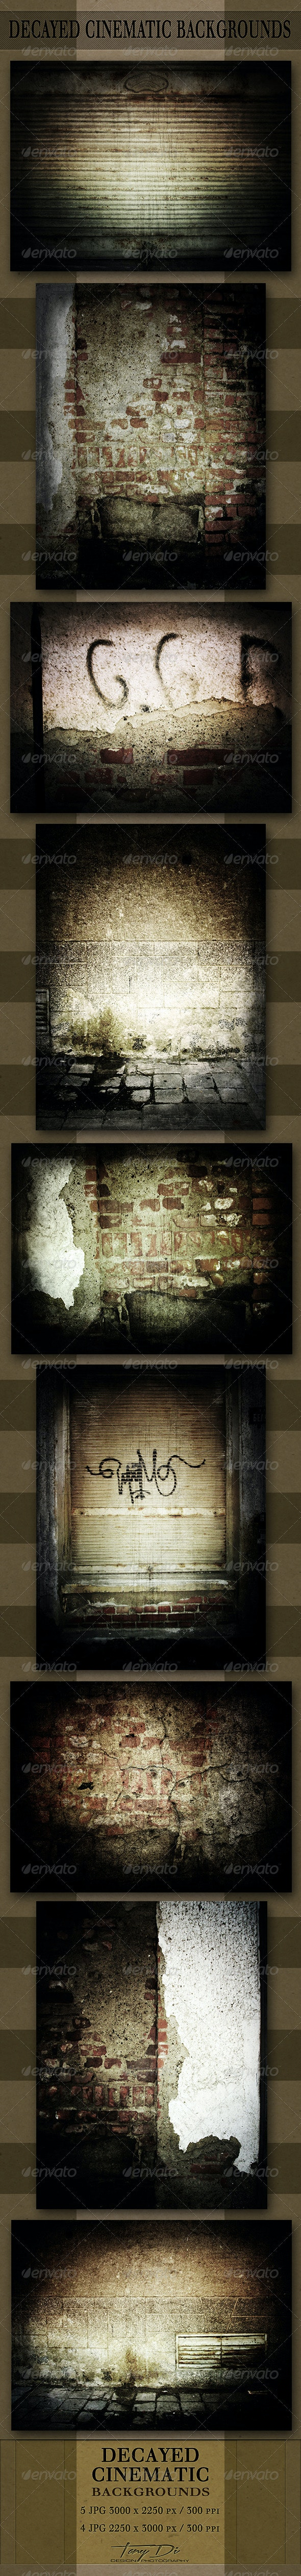 Decayed Cinematic Backgrounds - Urban Backgrounds